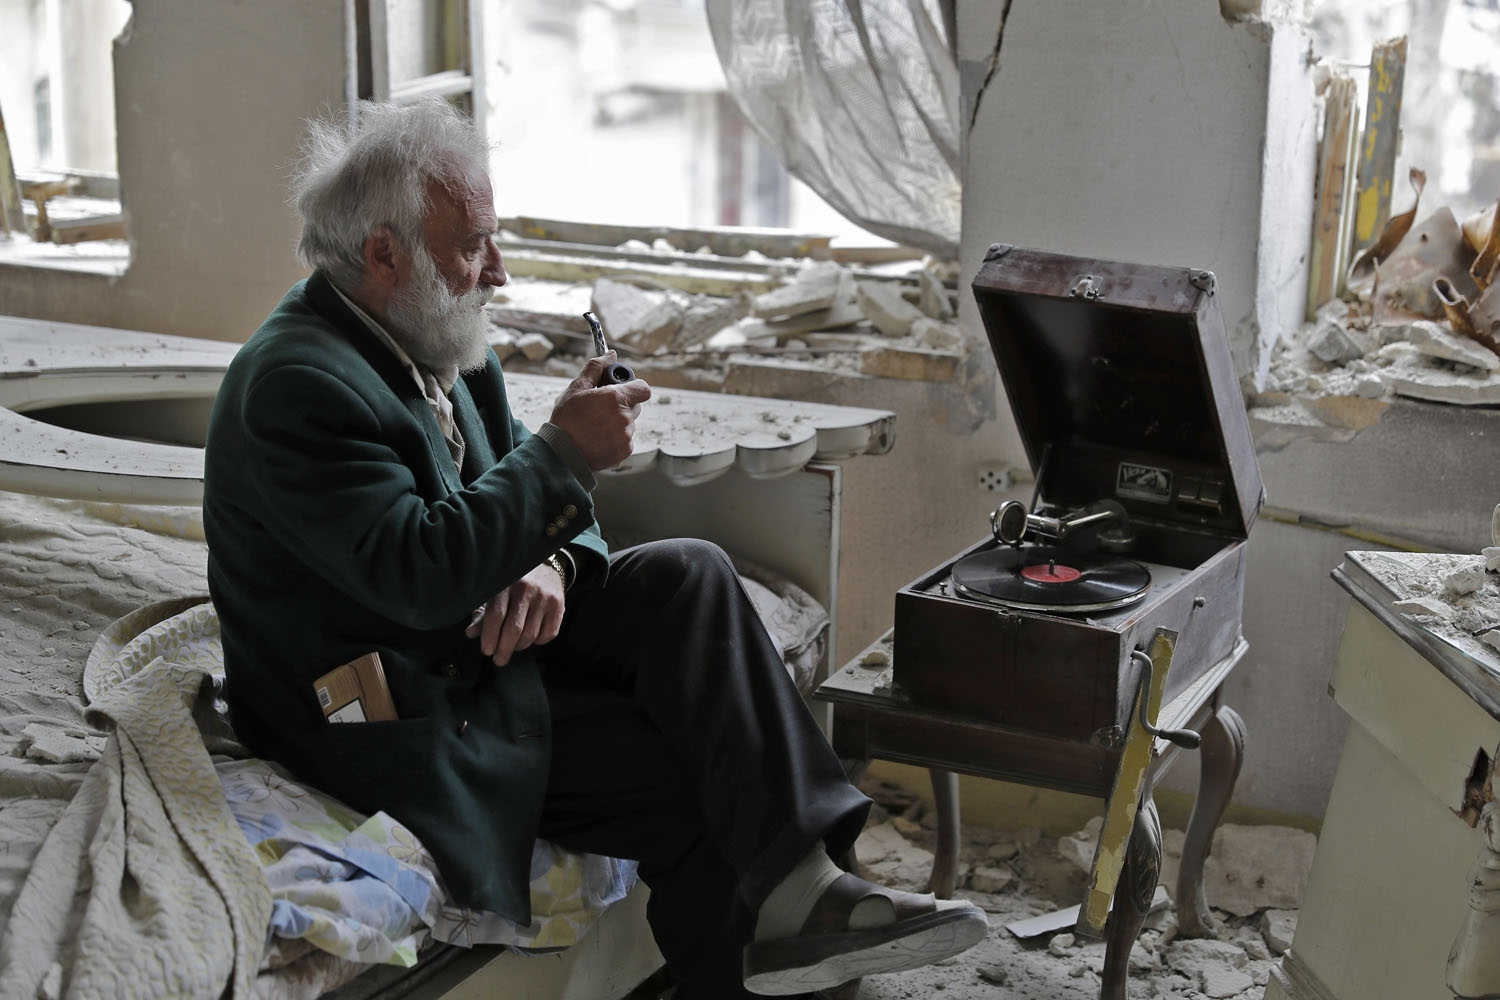 Mohammad Mohiedine Anis, 70, smokes his pipe as he sits in his destroyed bedroom listening to music on his vinyl player, gramophone, in Aleppo's formerly rebel-held al-Shaar neighbourhood on March 9, 2017. / AFP PHOTO / JOSEPH EID